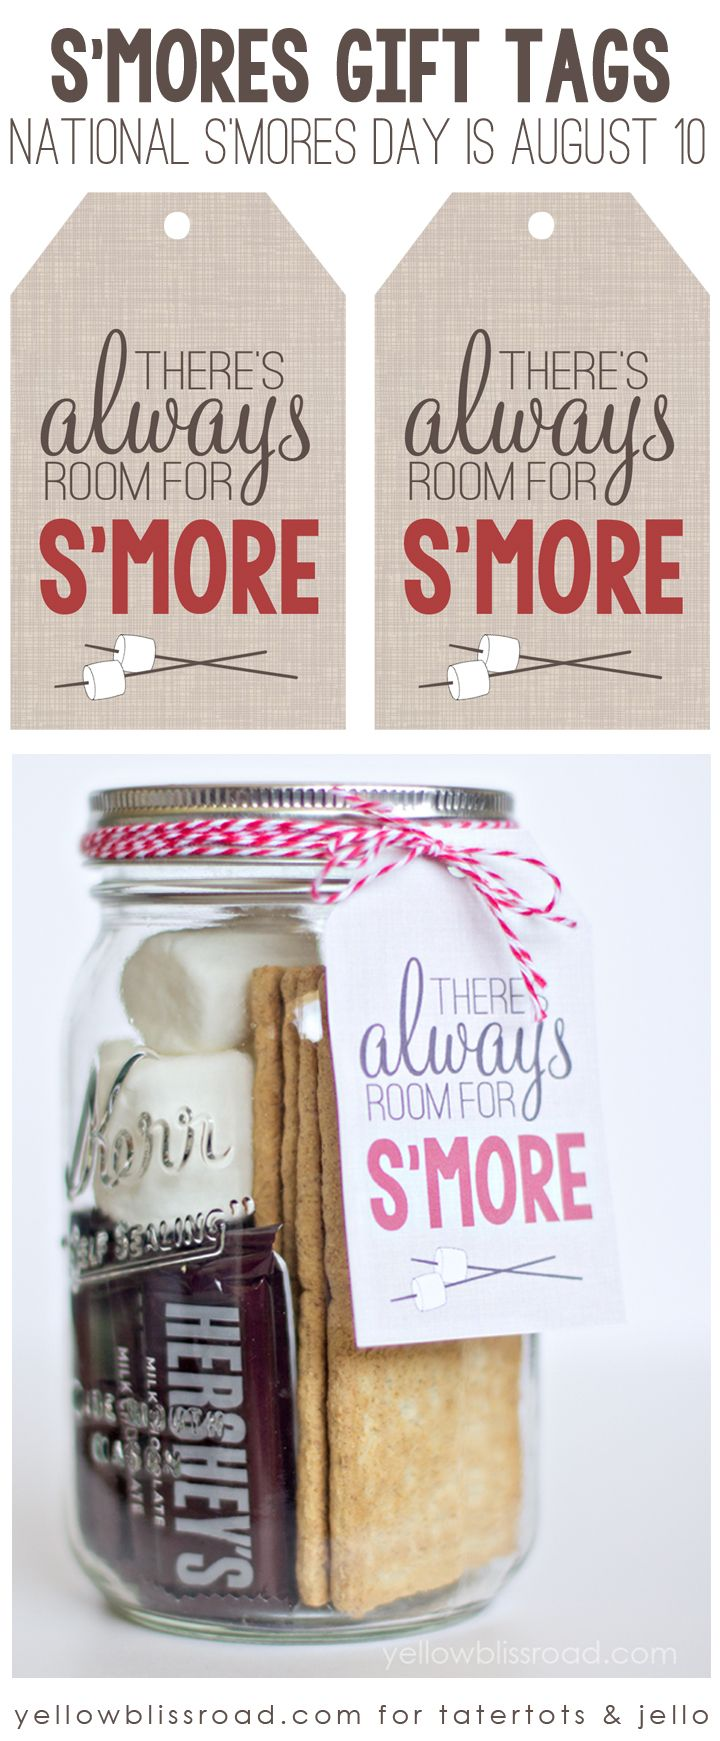 """There's always room for S'more"" Free printable gift tag! Perfect for National S'Mores Day August 10!"